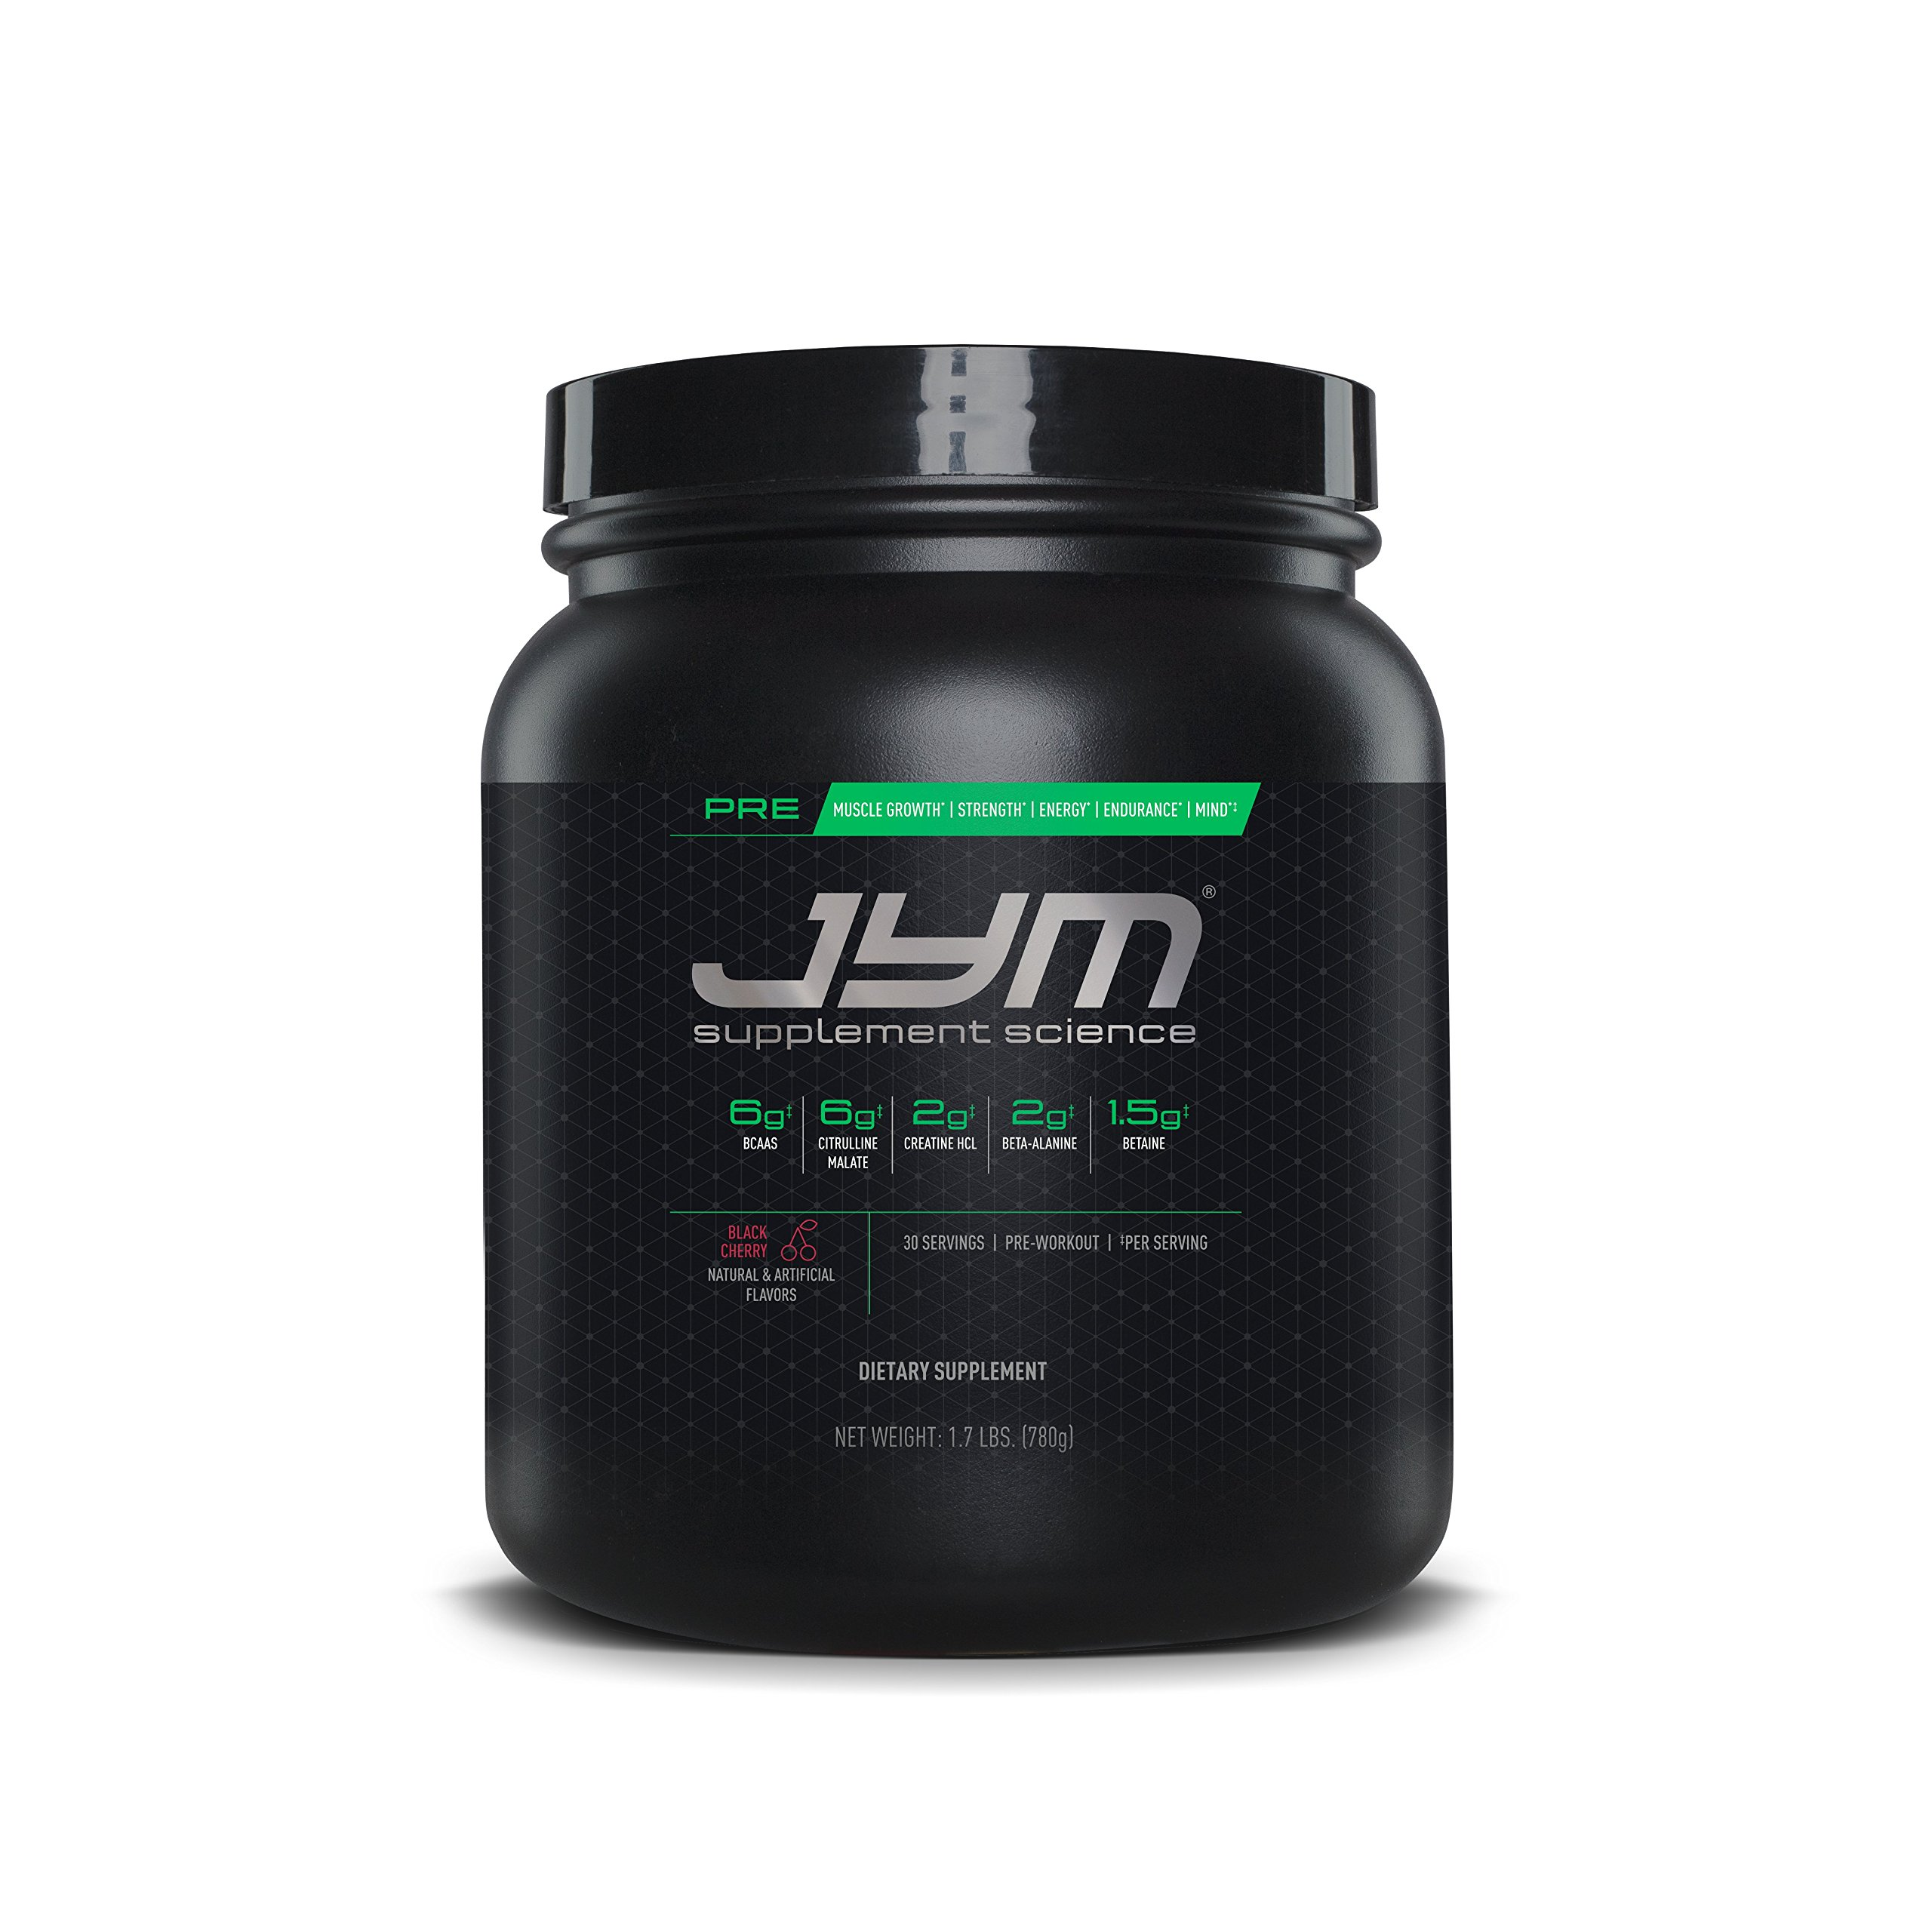 JYM Supplement Science, PRE JYM, Black Cherry, Pre-Workout with BCAA's, Creatine HCl, Citrulline Malate, Beta-alanine, Betaine, Alpha-GPC, Beet Root Extract and more, 30 Servings